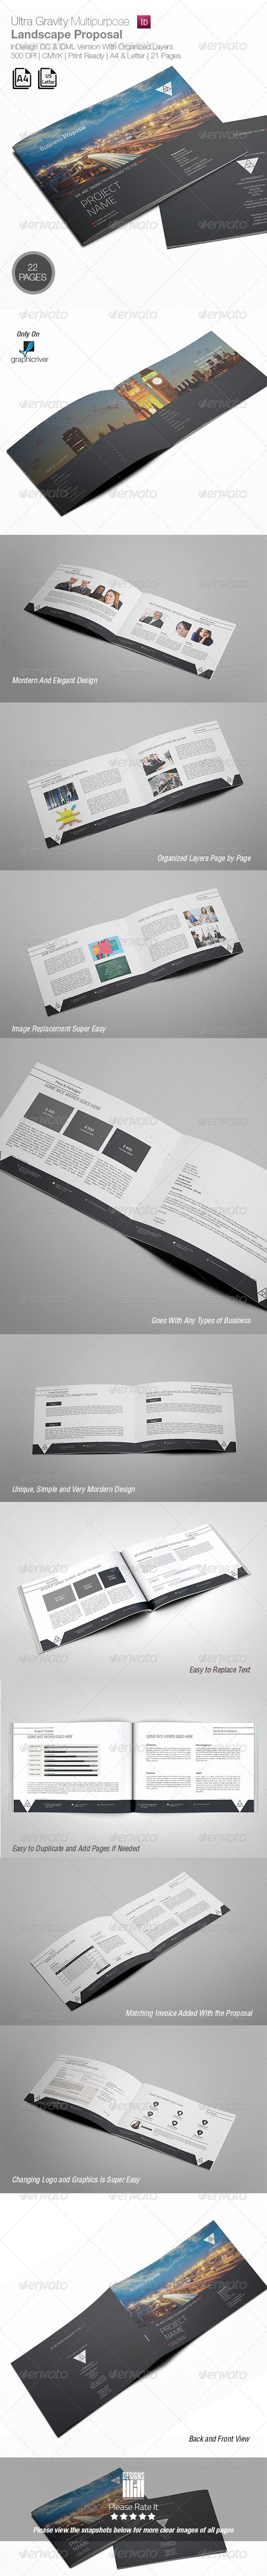 Ultra Gravity Multipurpose Landscape Proposal - Proposals & Invoices Stationery